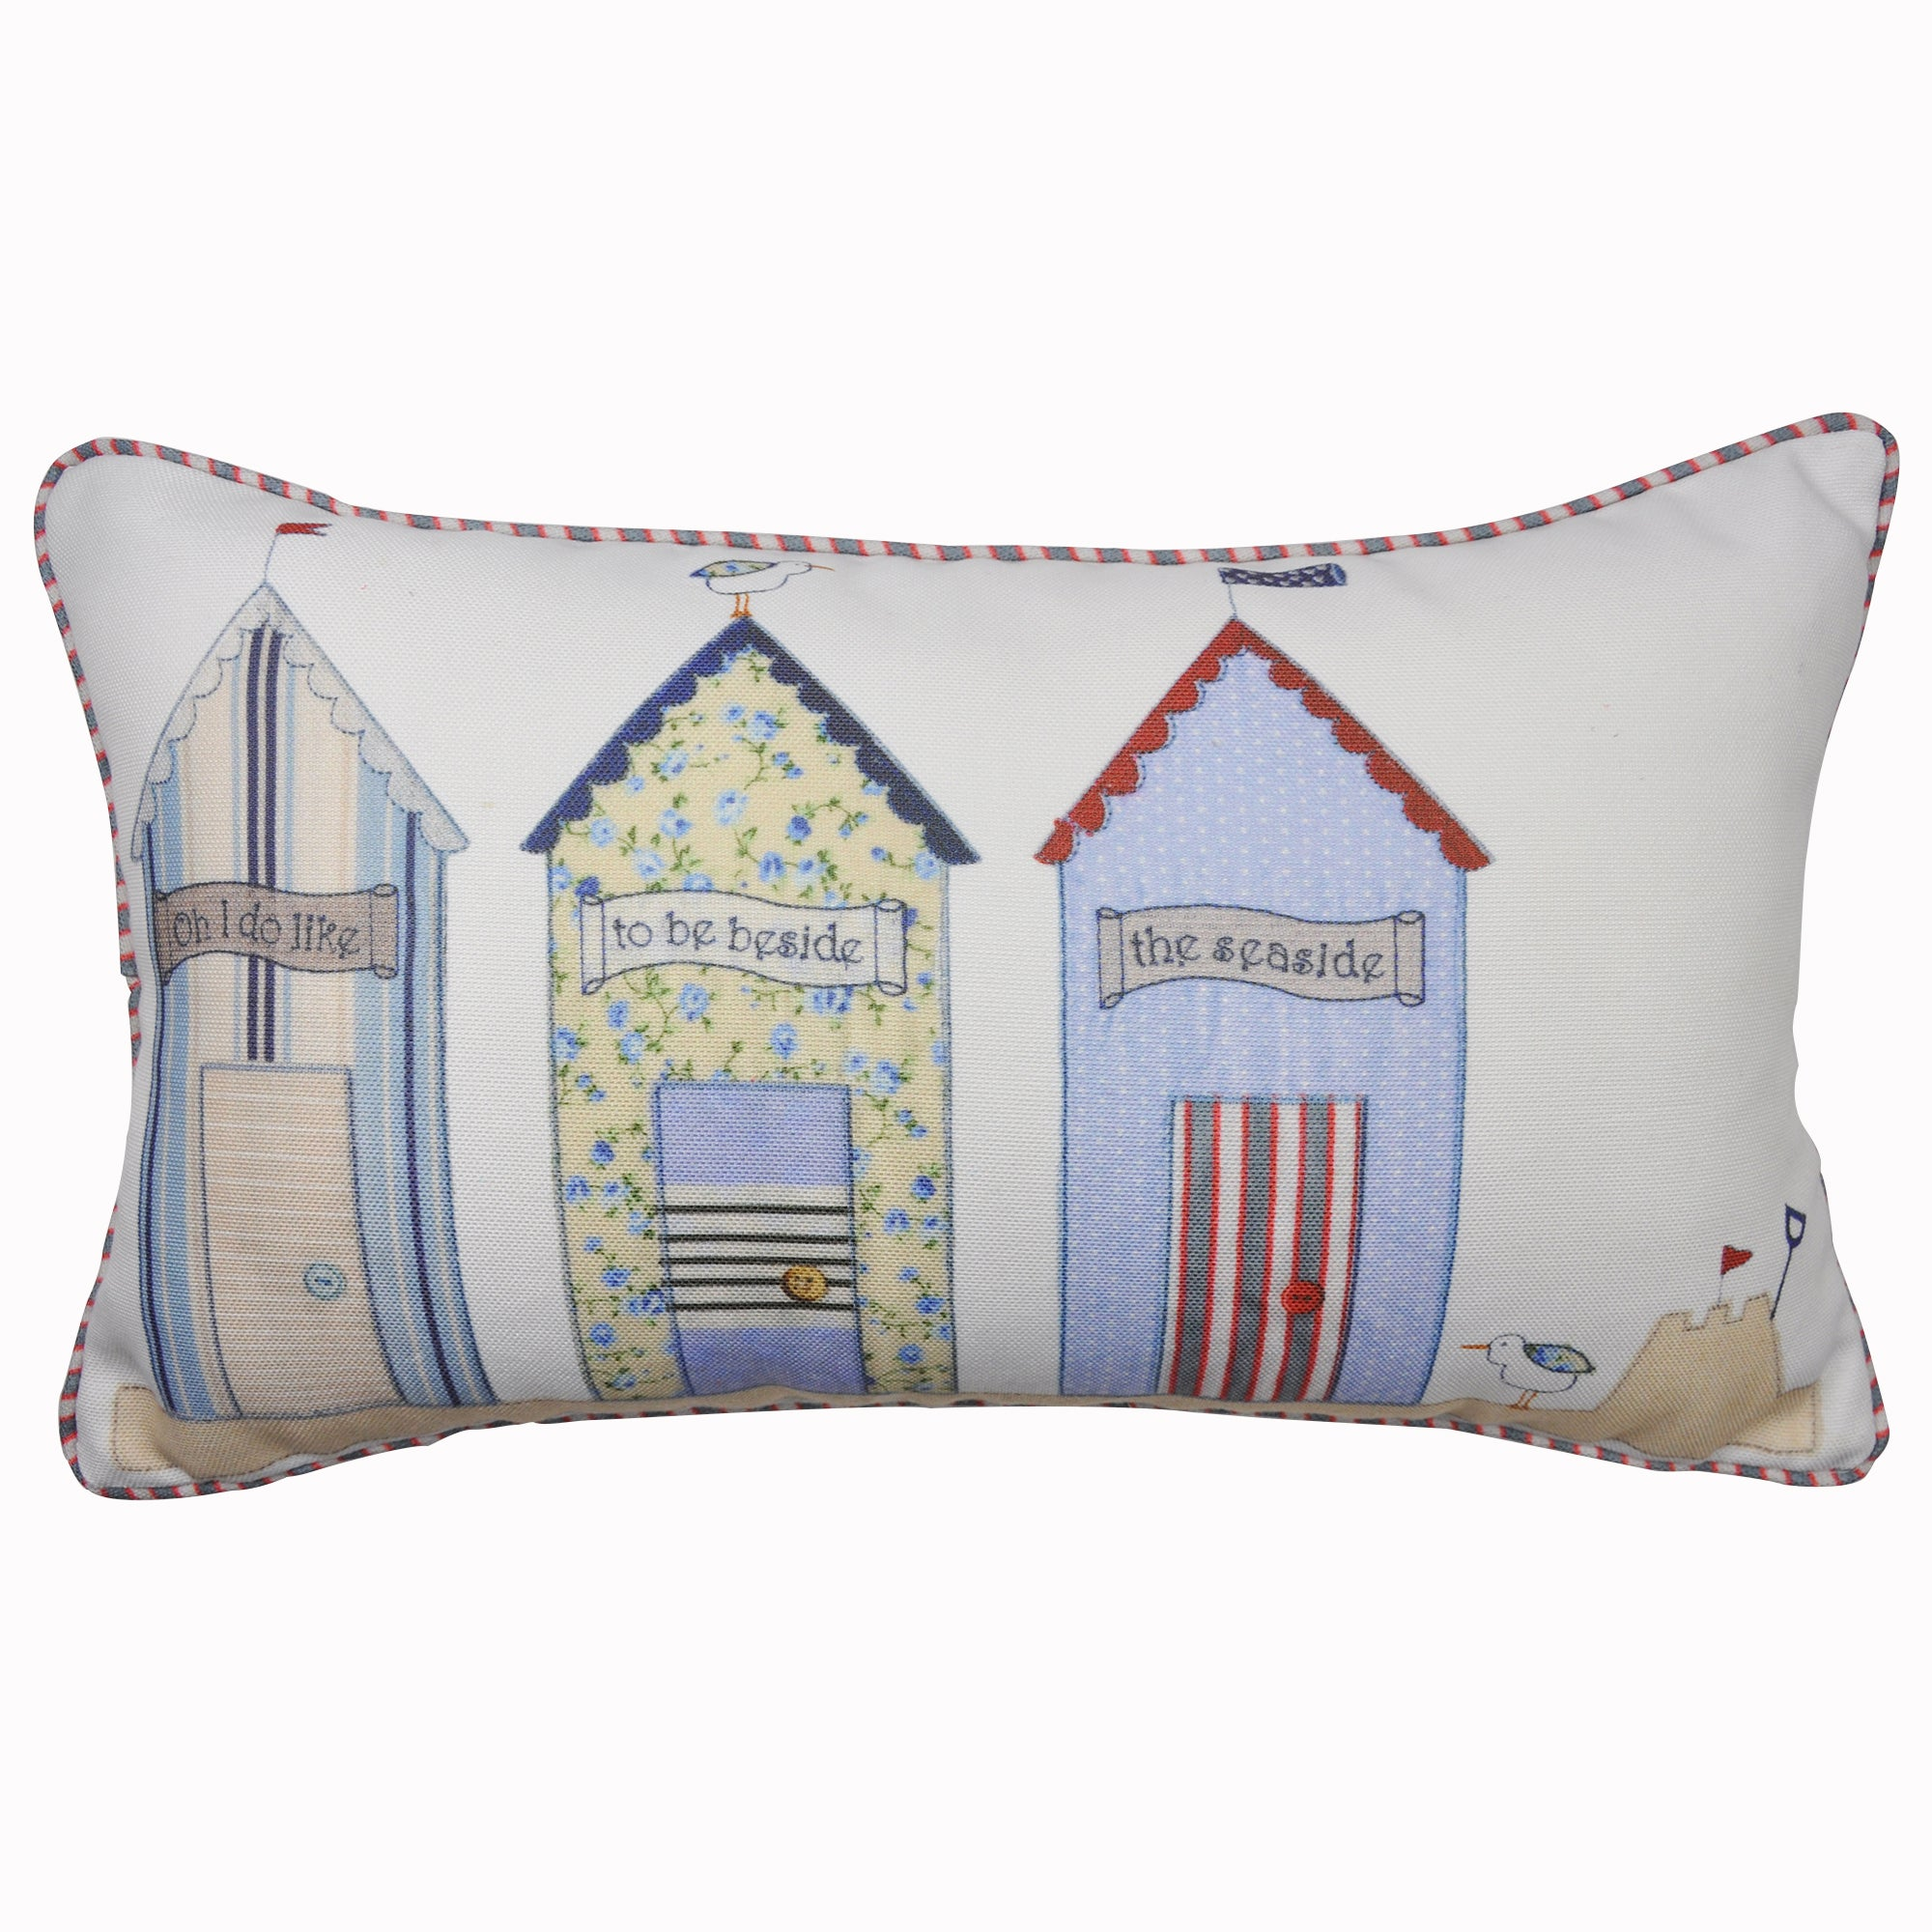 Beside the Seaside Boudoir Cushion